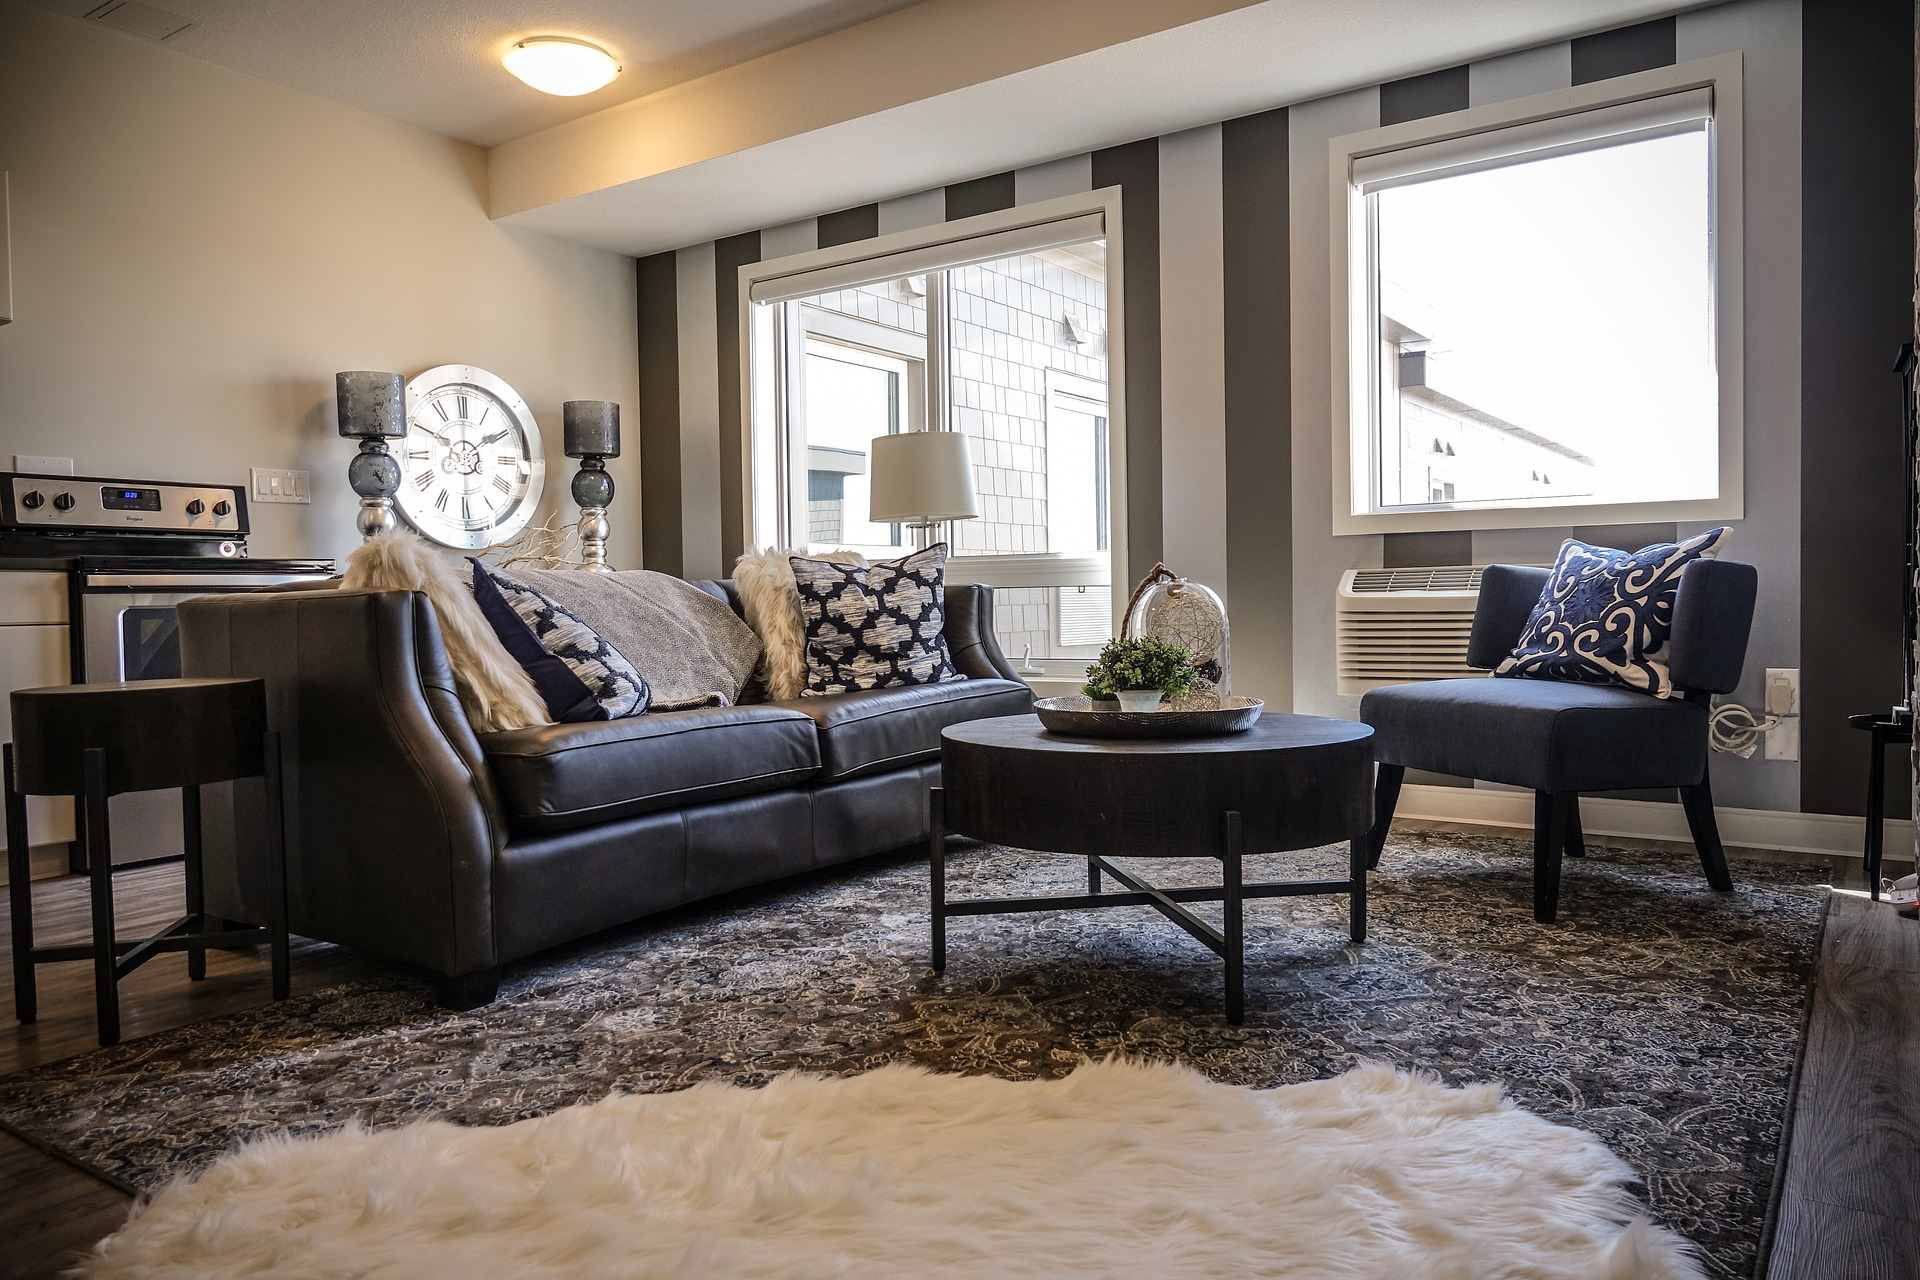 Key Factors to Consider in Choosing the Right Rugs for your House